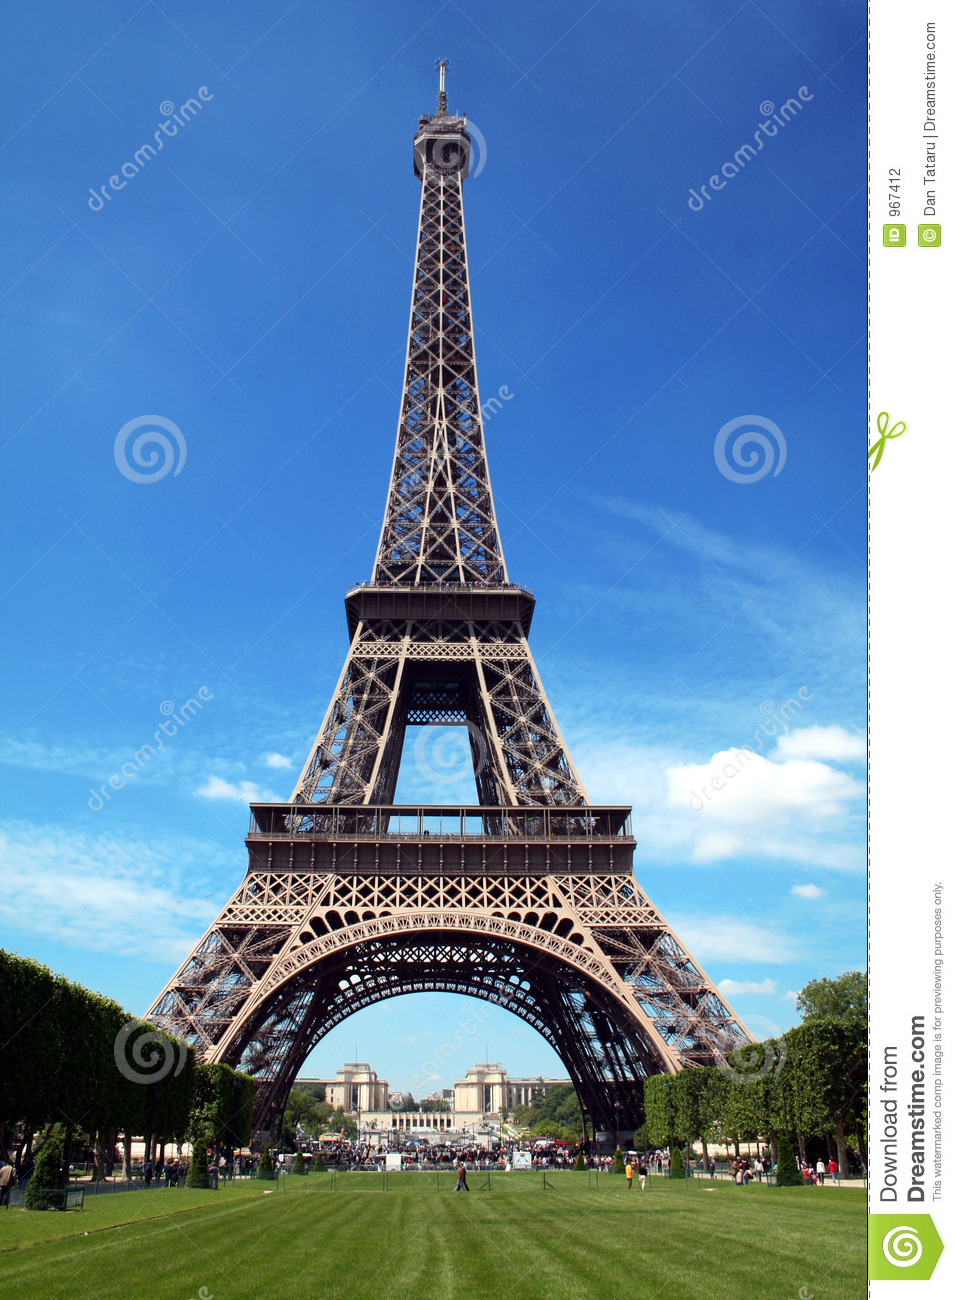 Tour eiffel paris france stock photo image of cityscape - Image de tour eiffel ...